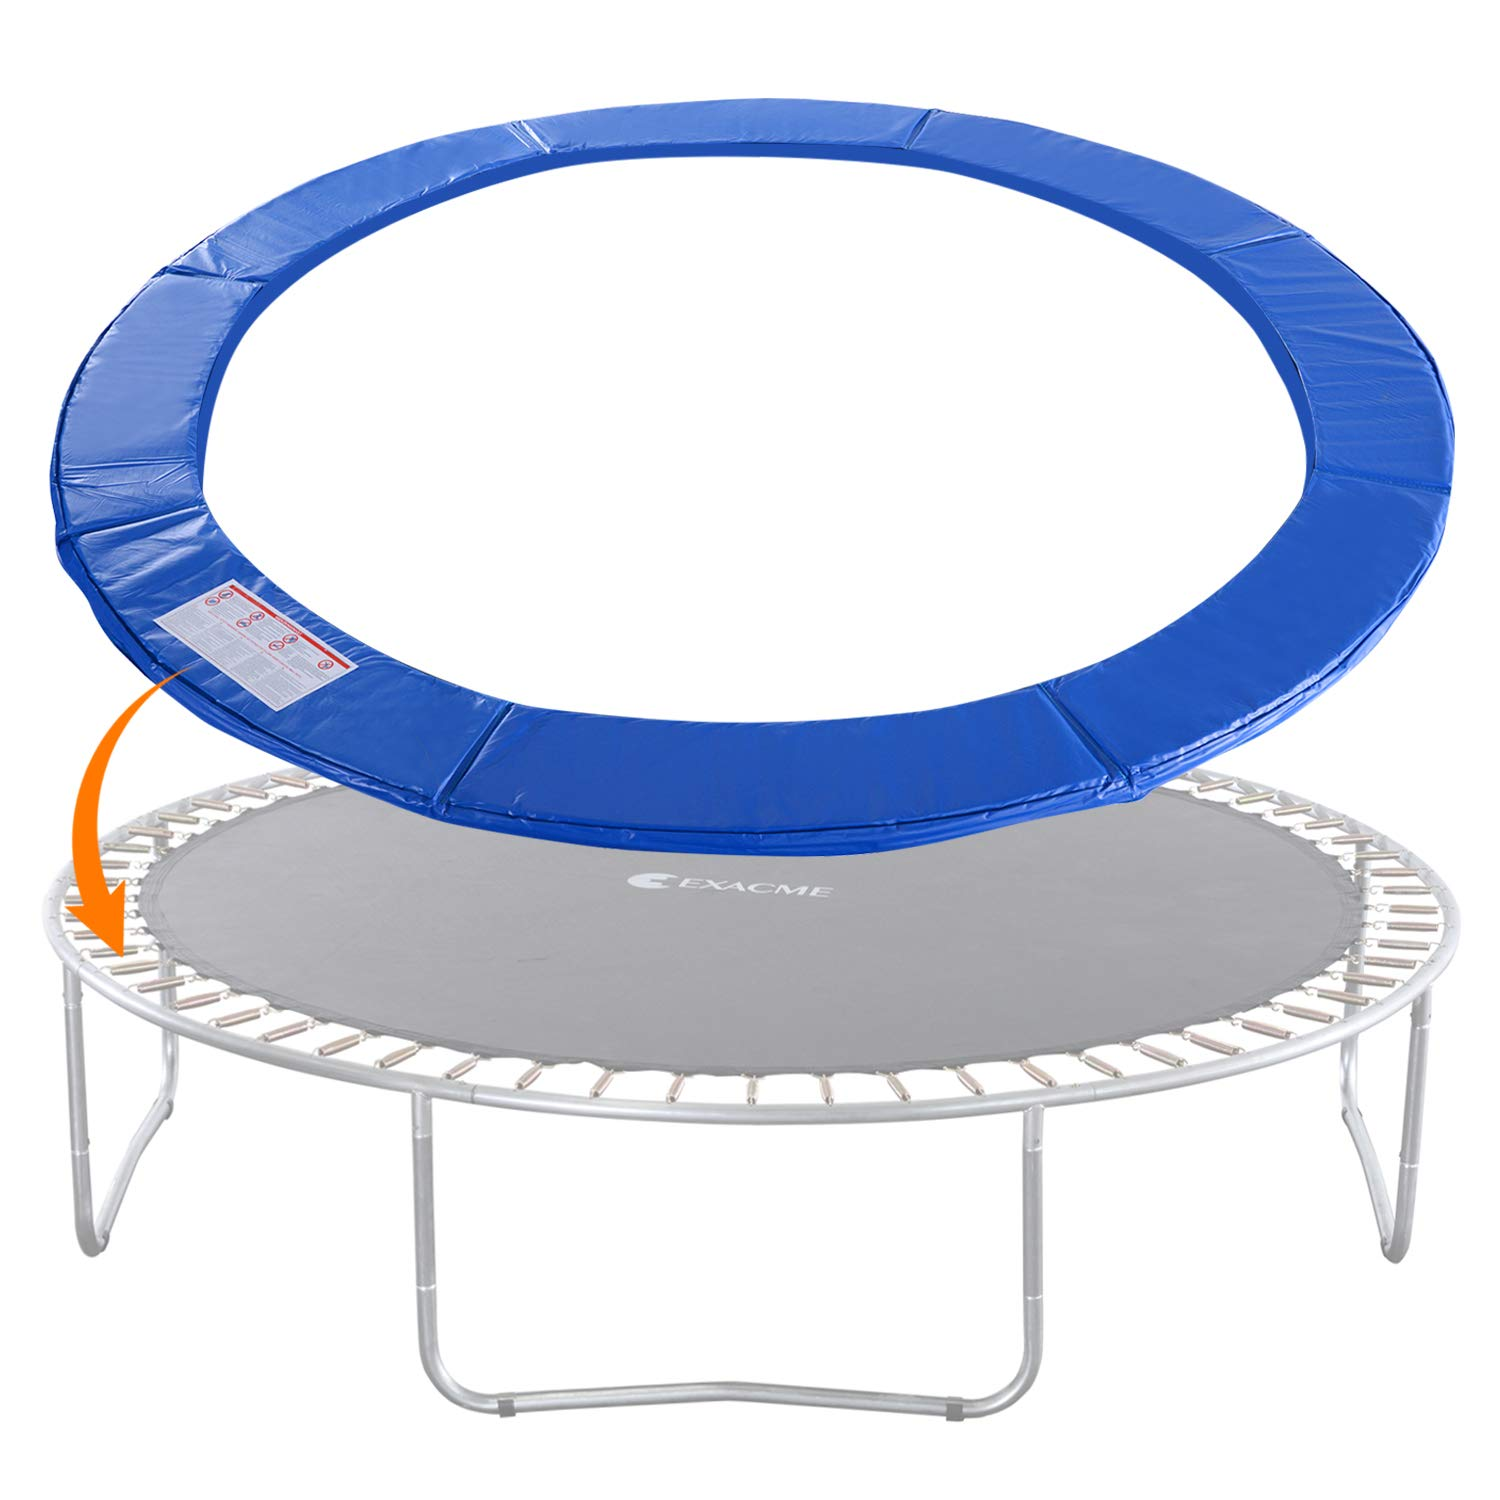 Exacme Trampoline Replacement Safety Pad Round Spring Cover, No Slots (Blue, 14 Foot)